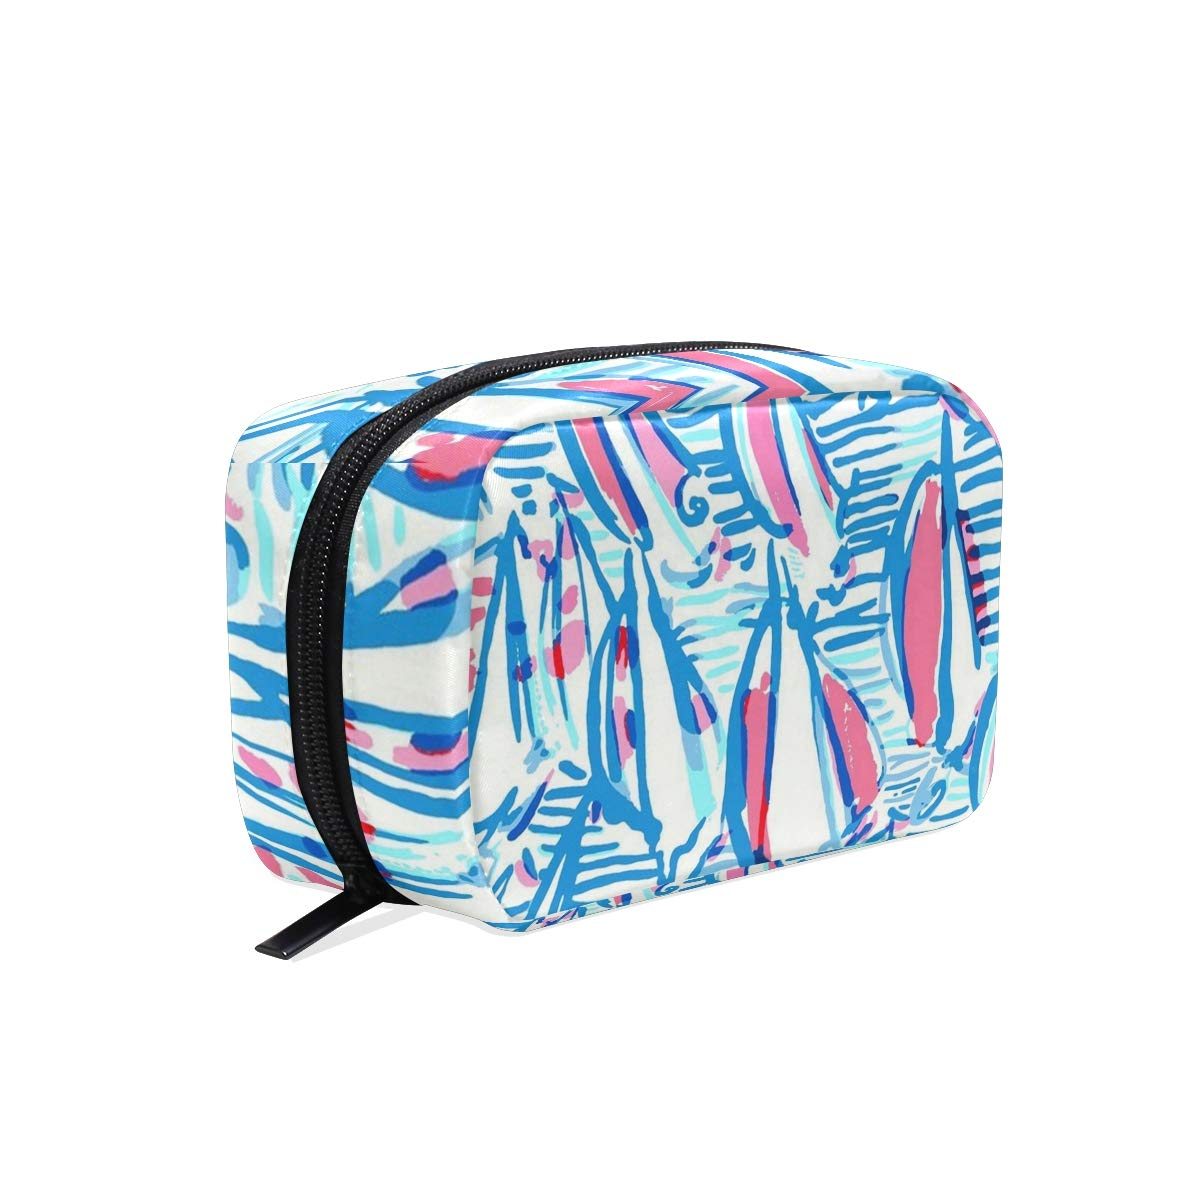 Portable Organizer Makeup bag,Lilly Pulitzer Cosmetic Bags Multi Compartment Travel Pouch Storage for Women